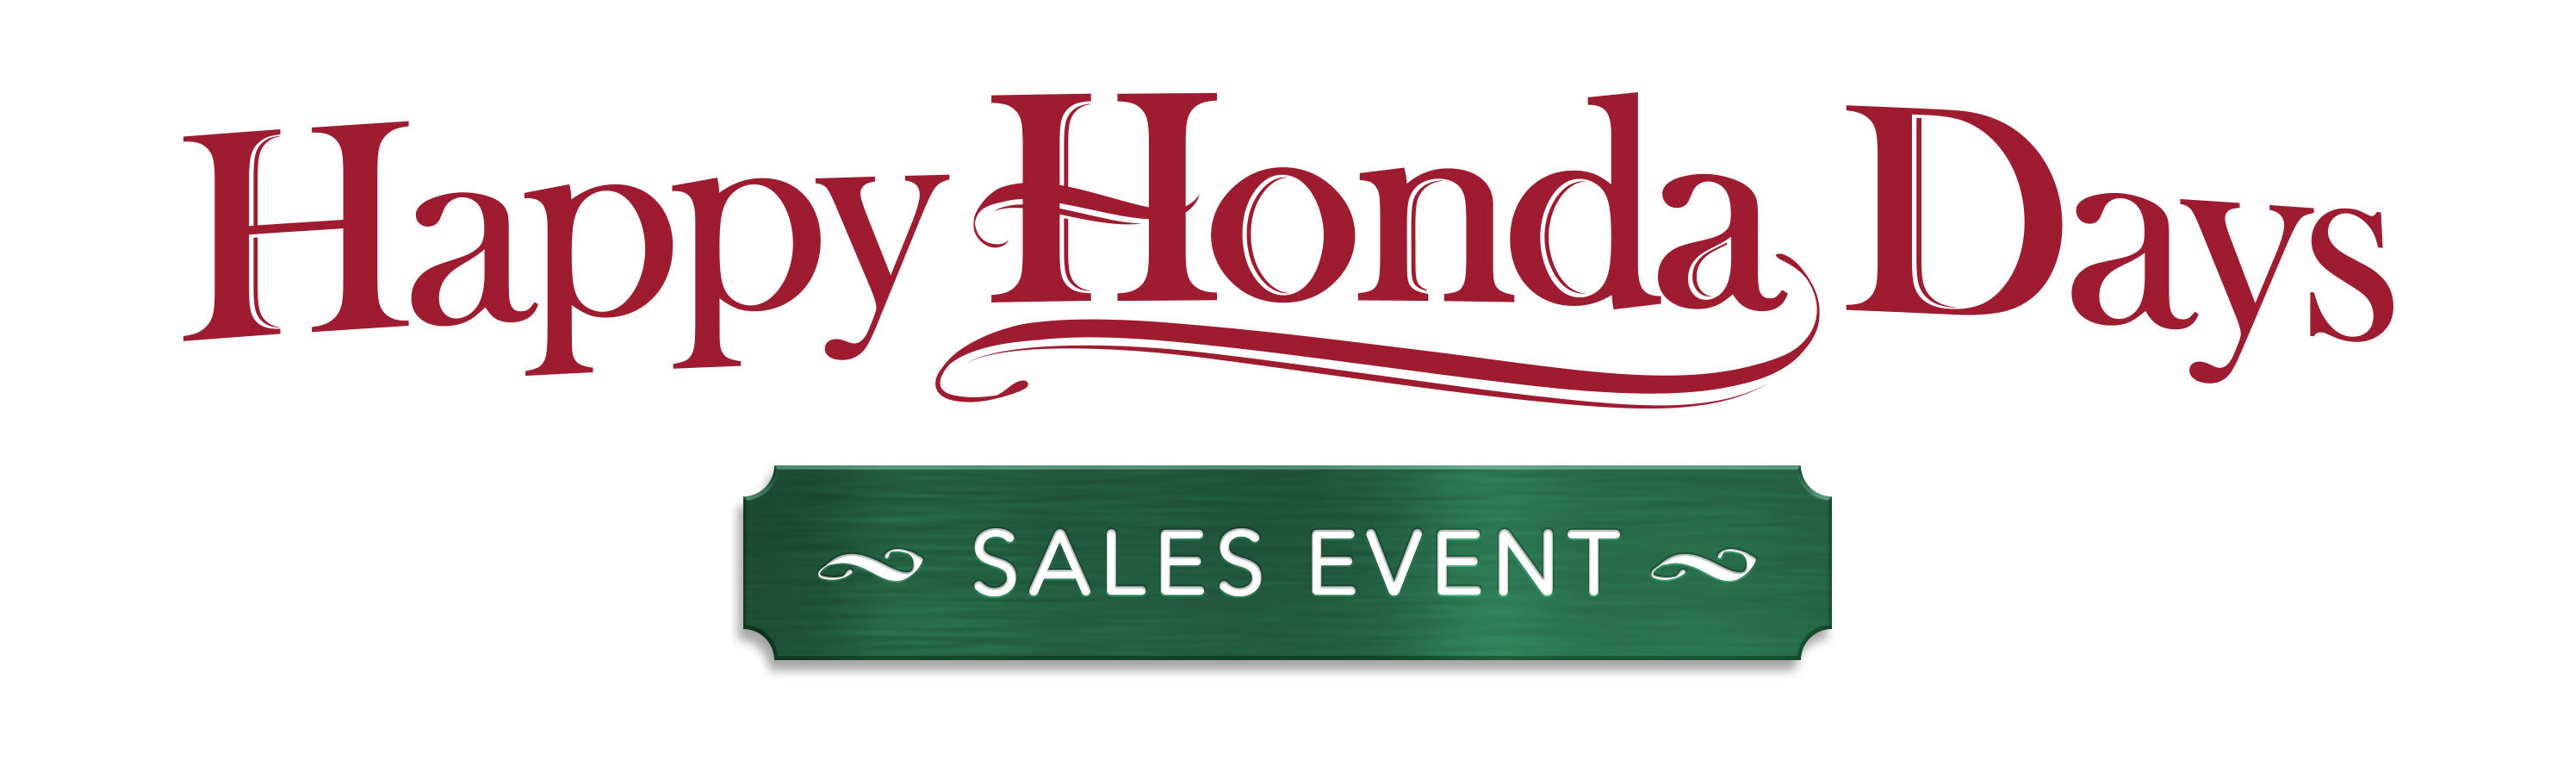 Itu0027s Happy Honda Days! The Best Time All Year To Buy Or Lease A Brand New  Honda. All New Hondas Are Marked Down To Their Year End Clearance Pricing,  ...